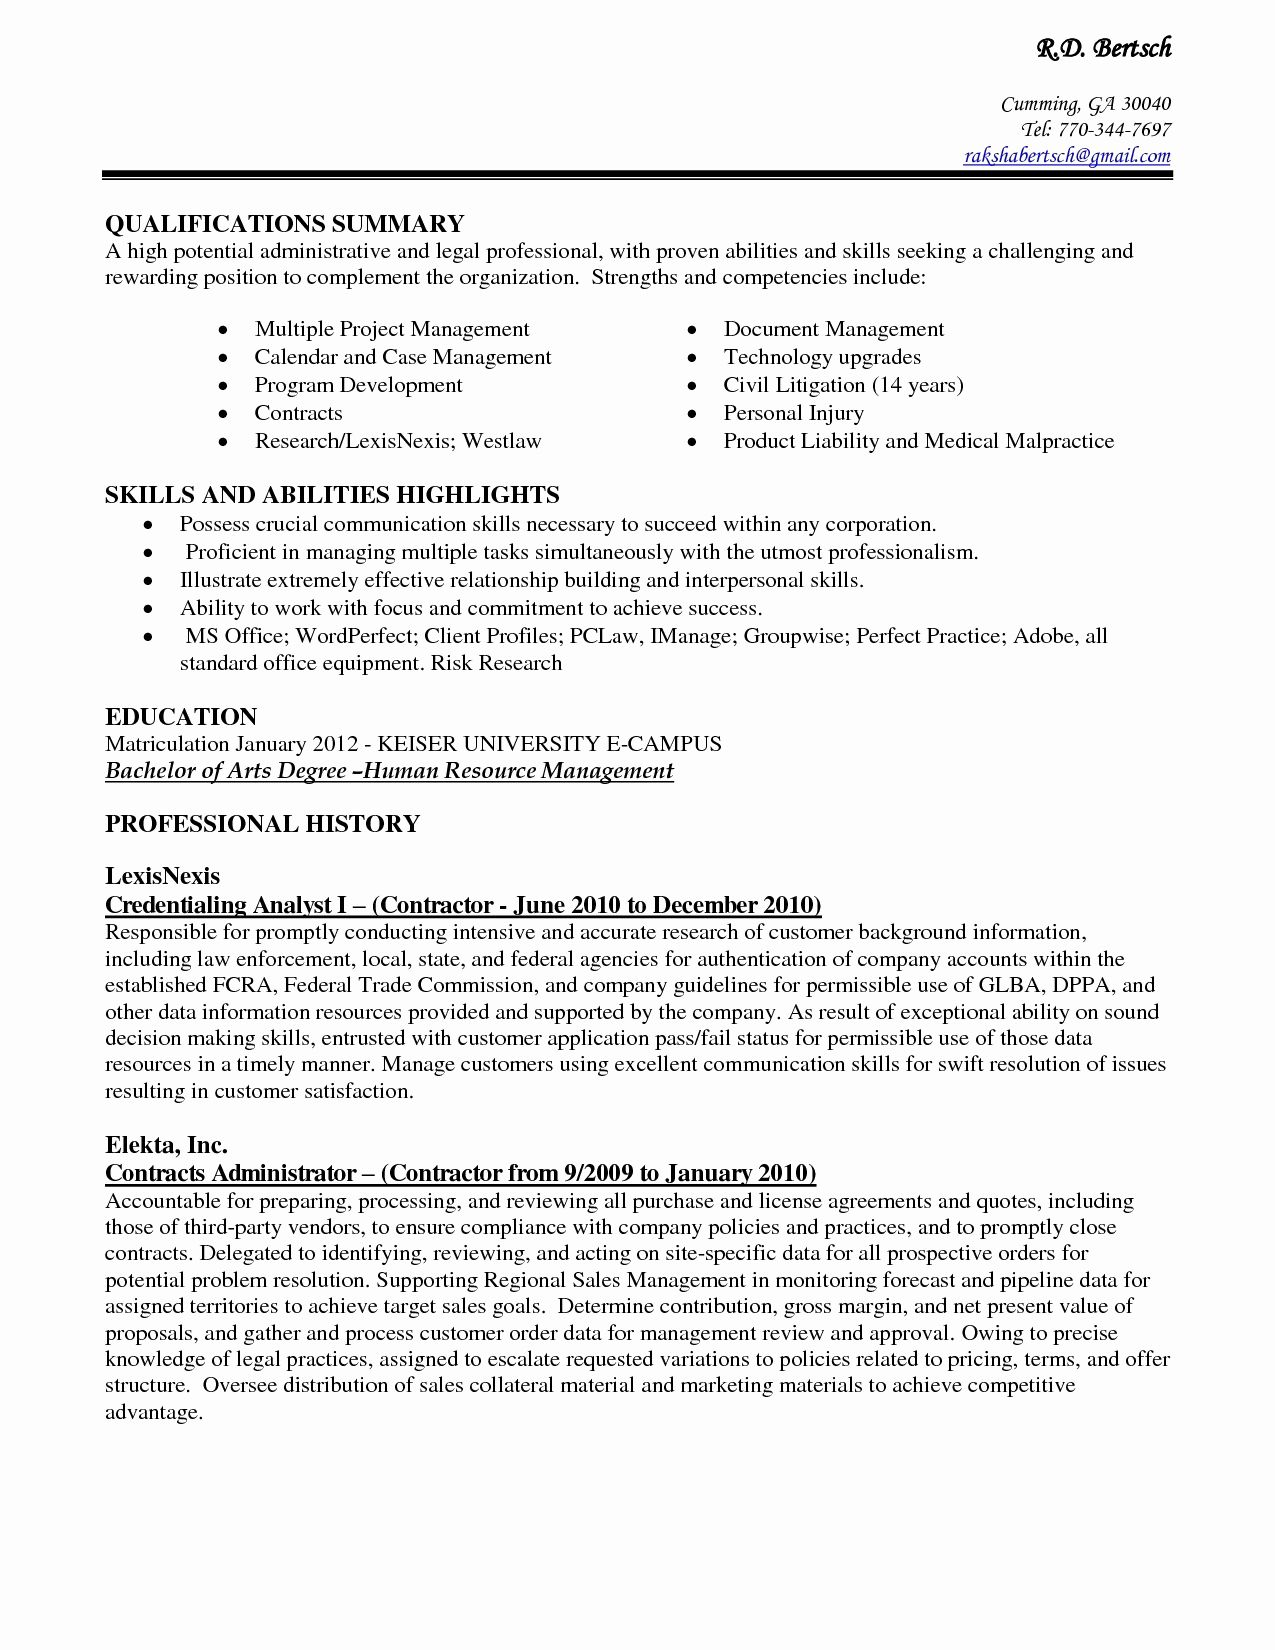 administrative assistant resume summary unique for office examples exam skills medical Resume Unique Skills For Resume